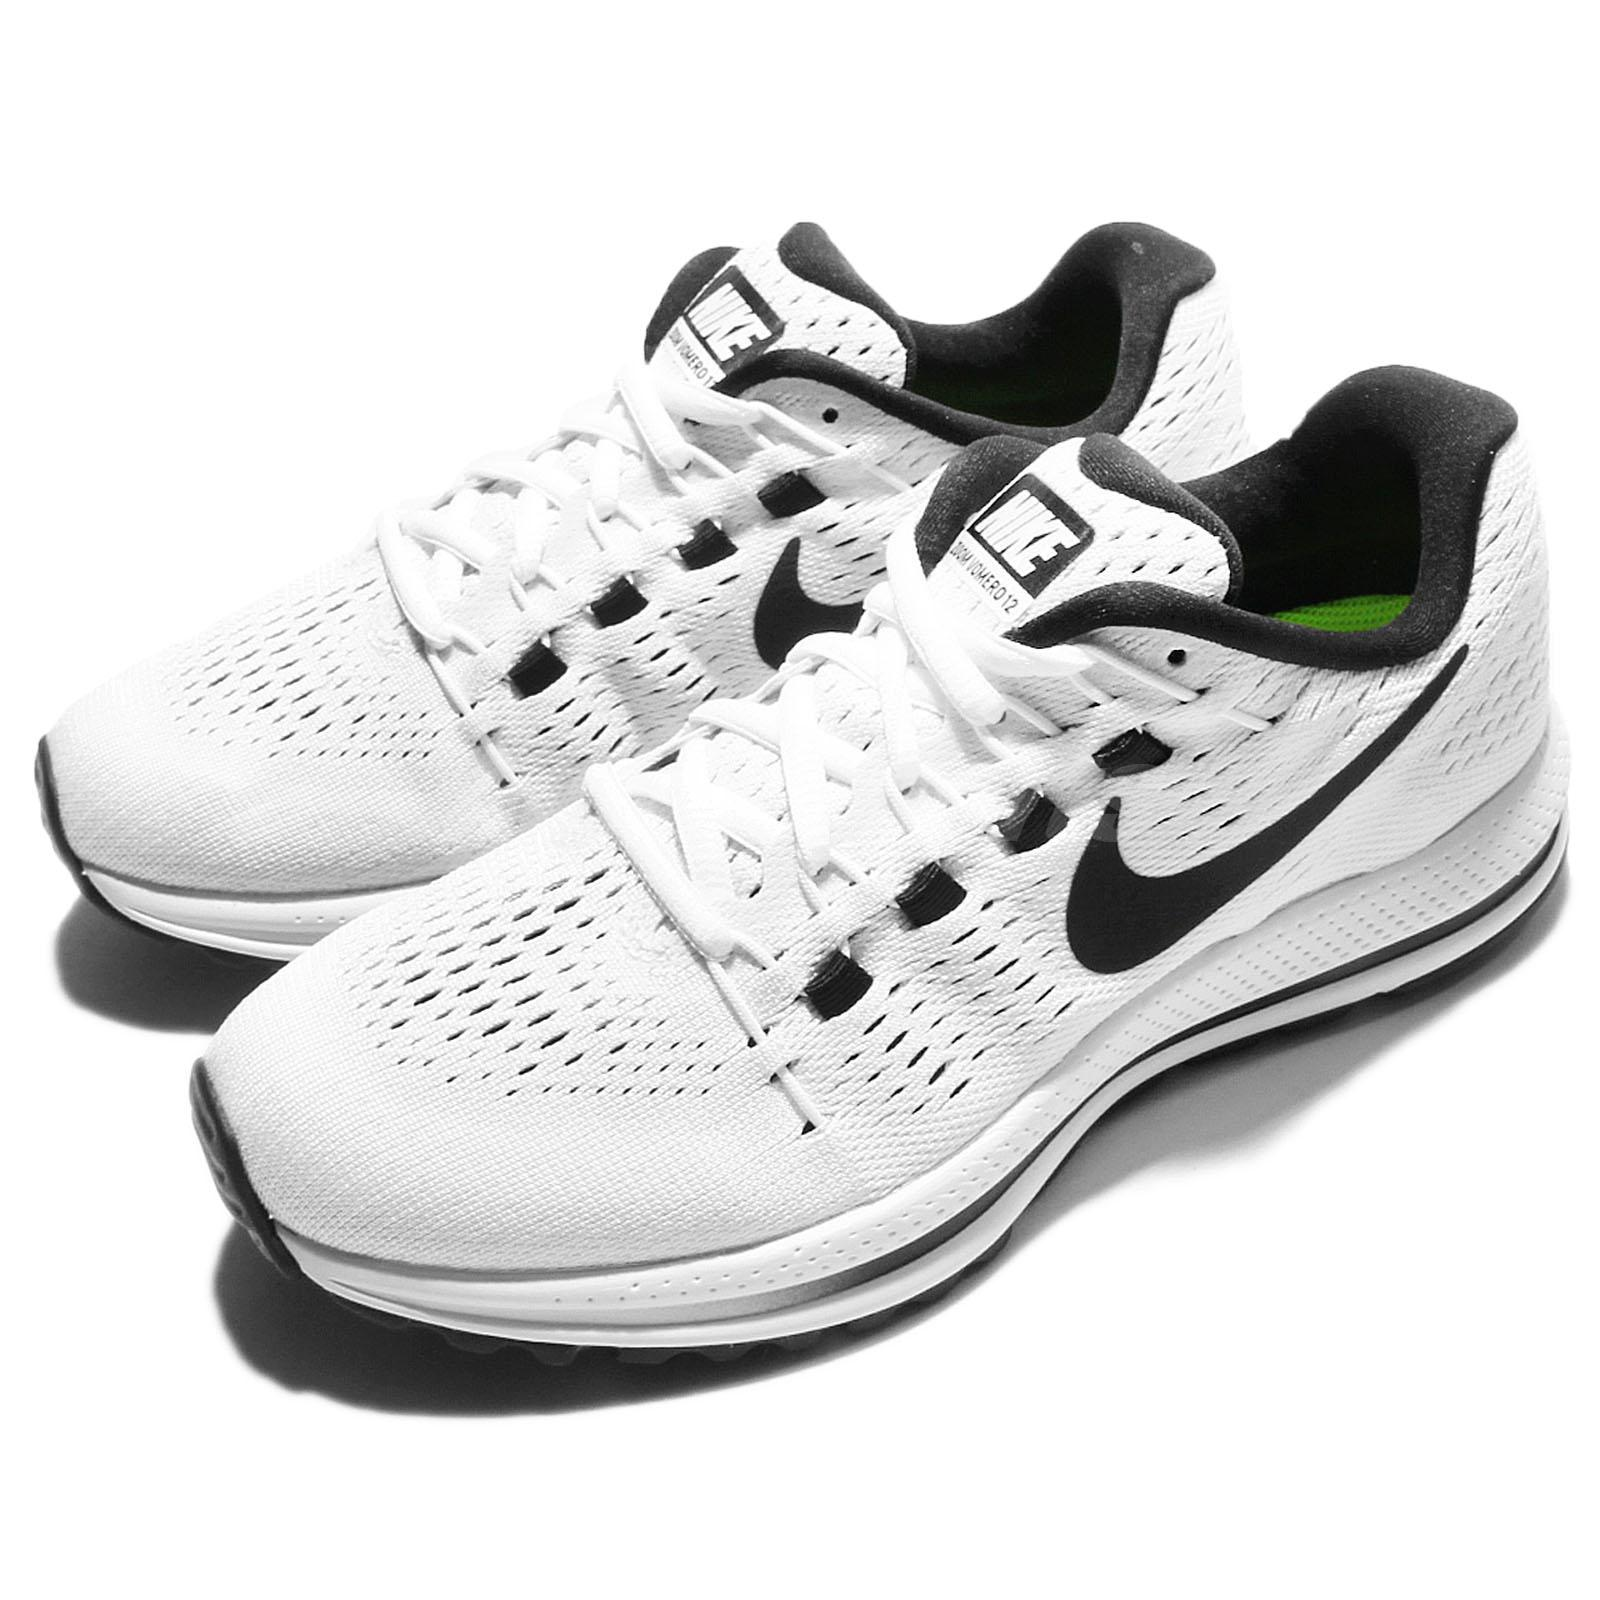 5ad48cb164ce3 Details about Wmns Nike Air Zoom Vomero 12 White Black Womens Running Shoes  863766-100